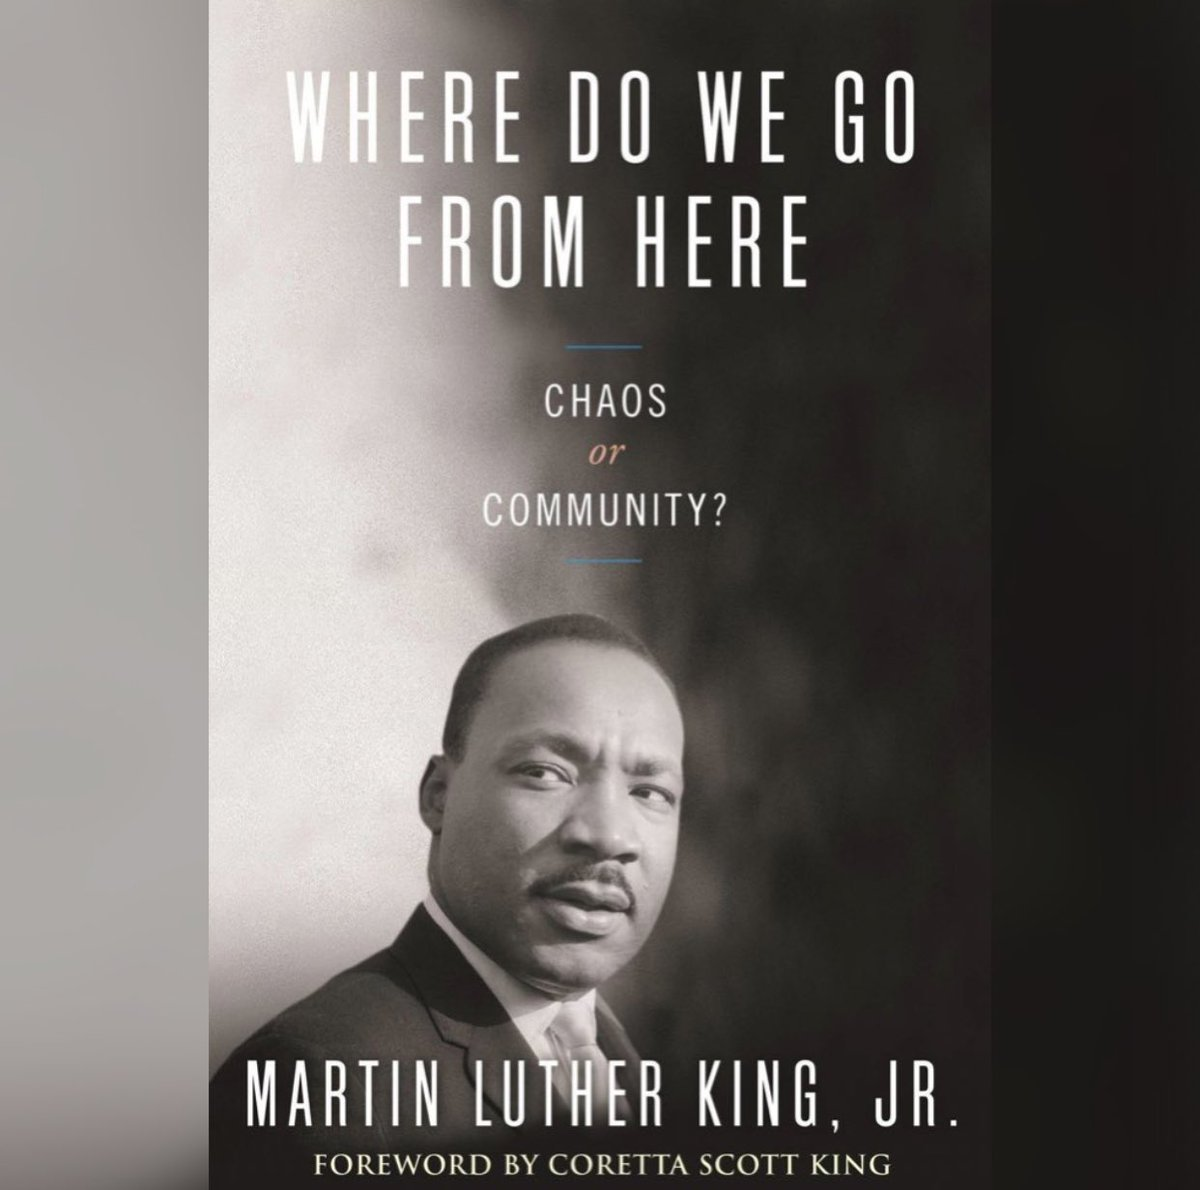 Chaos or Community? Humanity determines where we go from here. Let's choose community. Read #MLK's 'Where Do We Go From Here: Chaos or Community?' for more on the HOW. Link to purchase: king-center-bookstore.myshopify.com